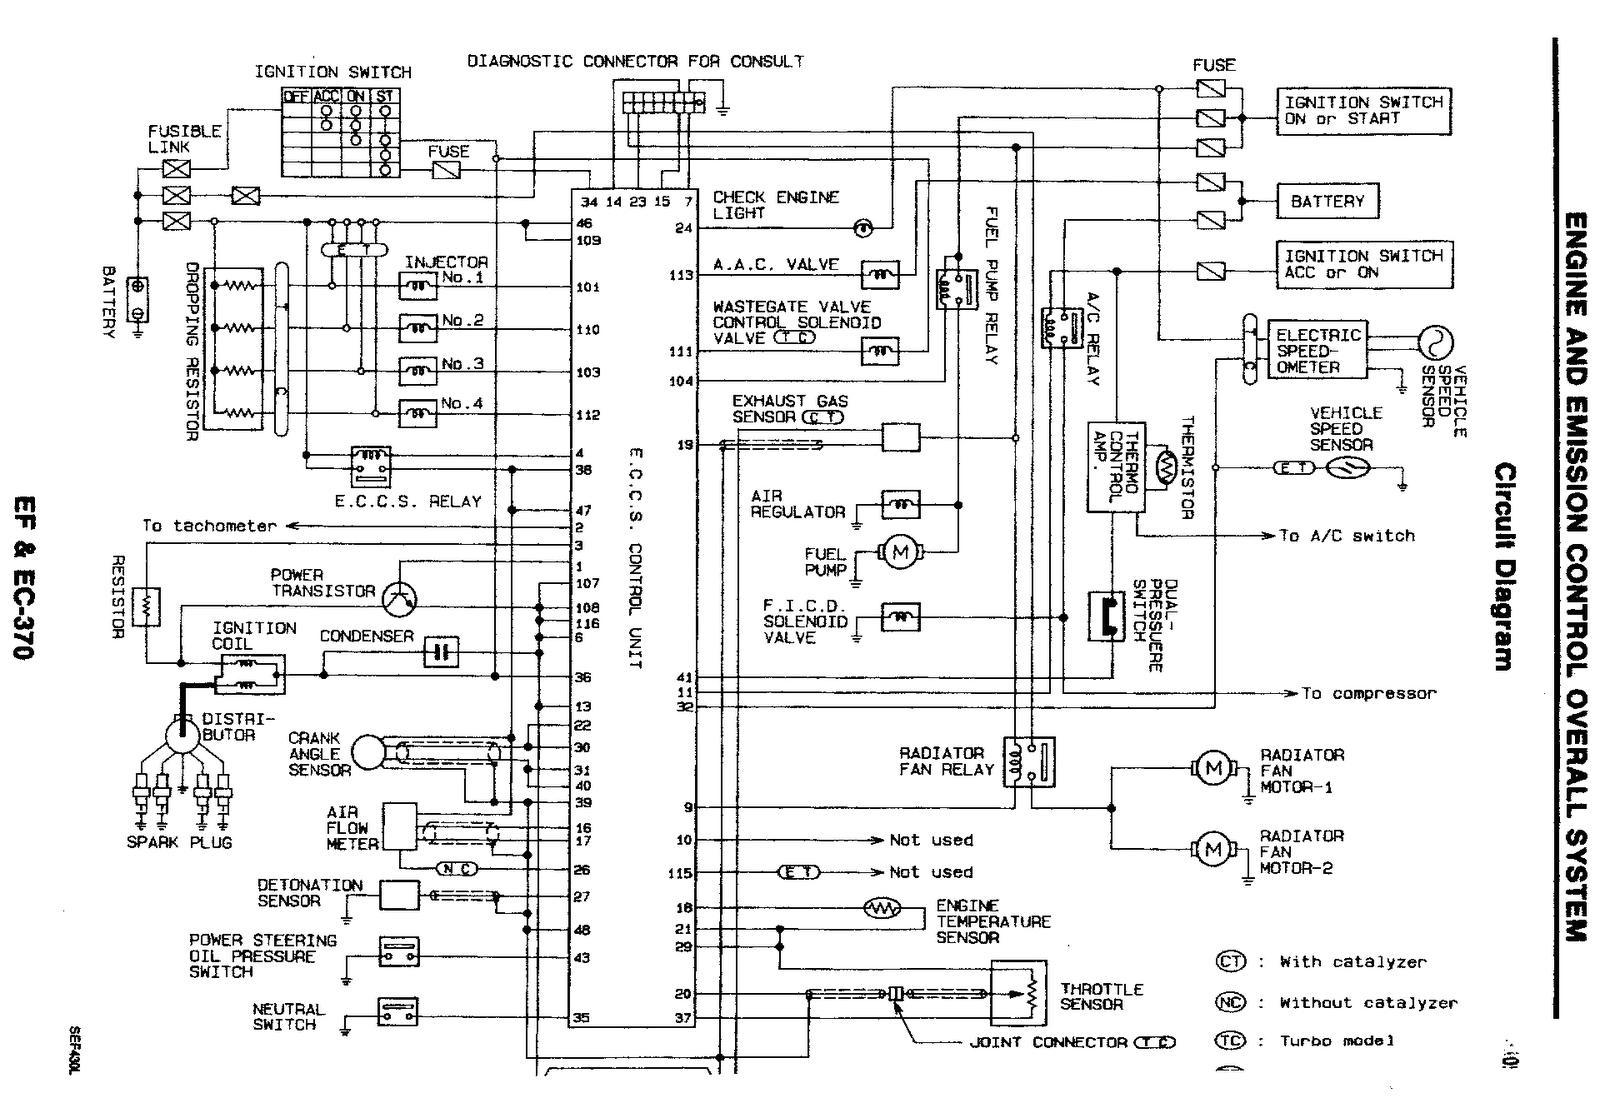 wiring diagrams audi a6 wiring diagram list wiring diagram of audi a6 c6 pdf